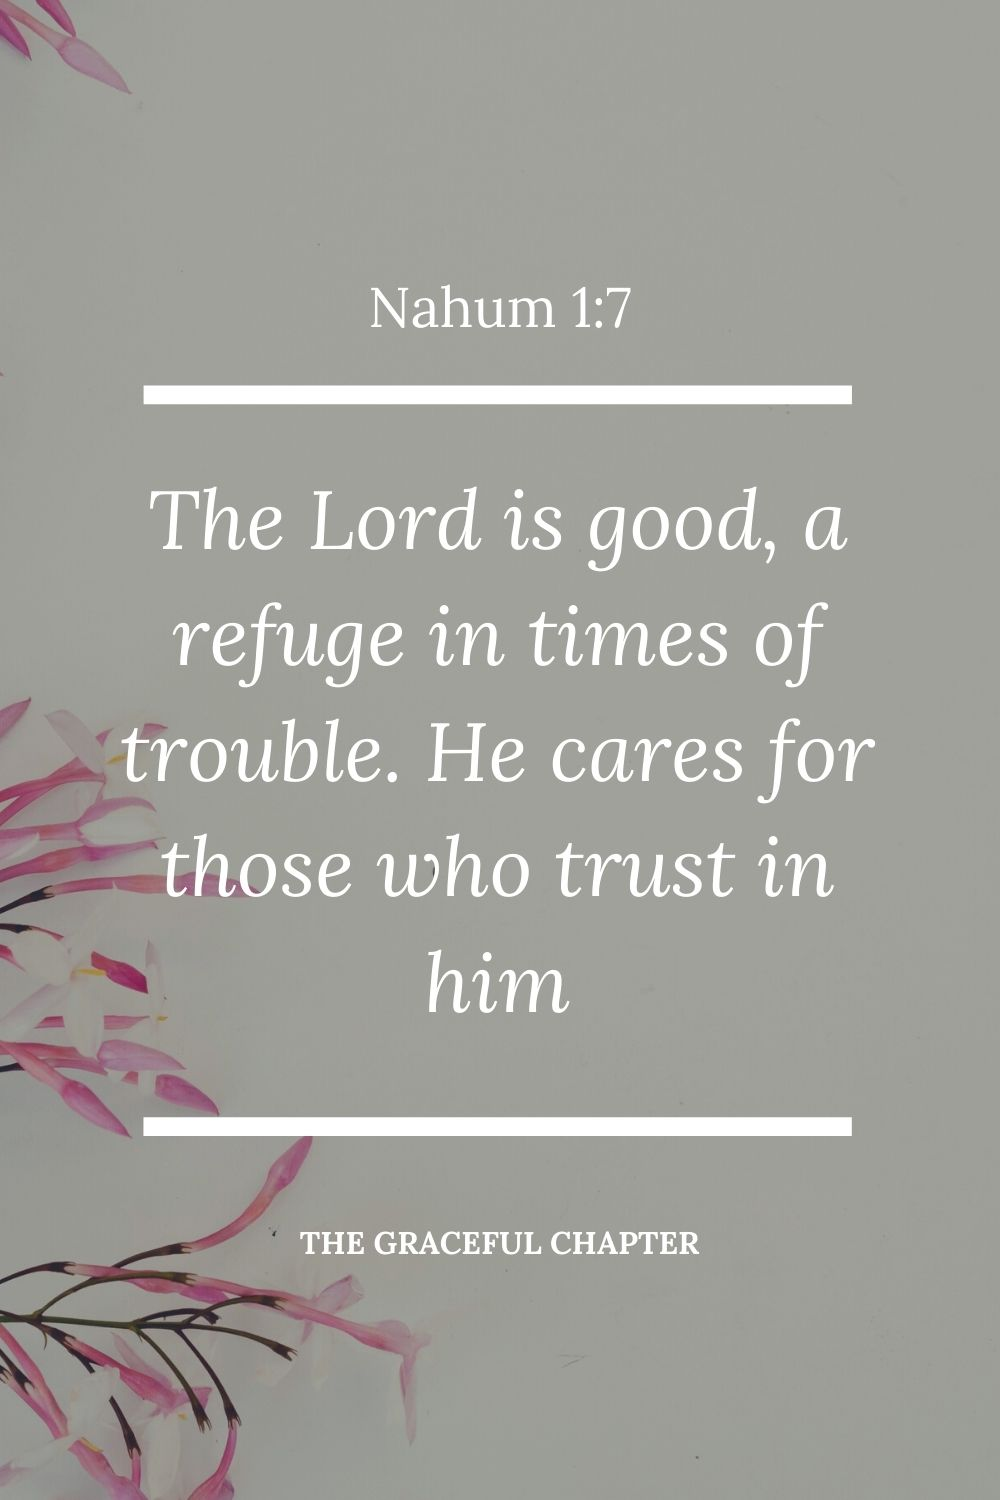 The Lord is good, a refuge in times of trouble. He cares for those who trust in him Nahum 1:7